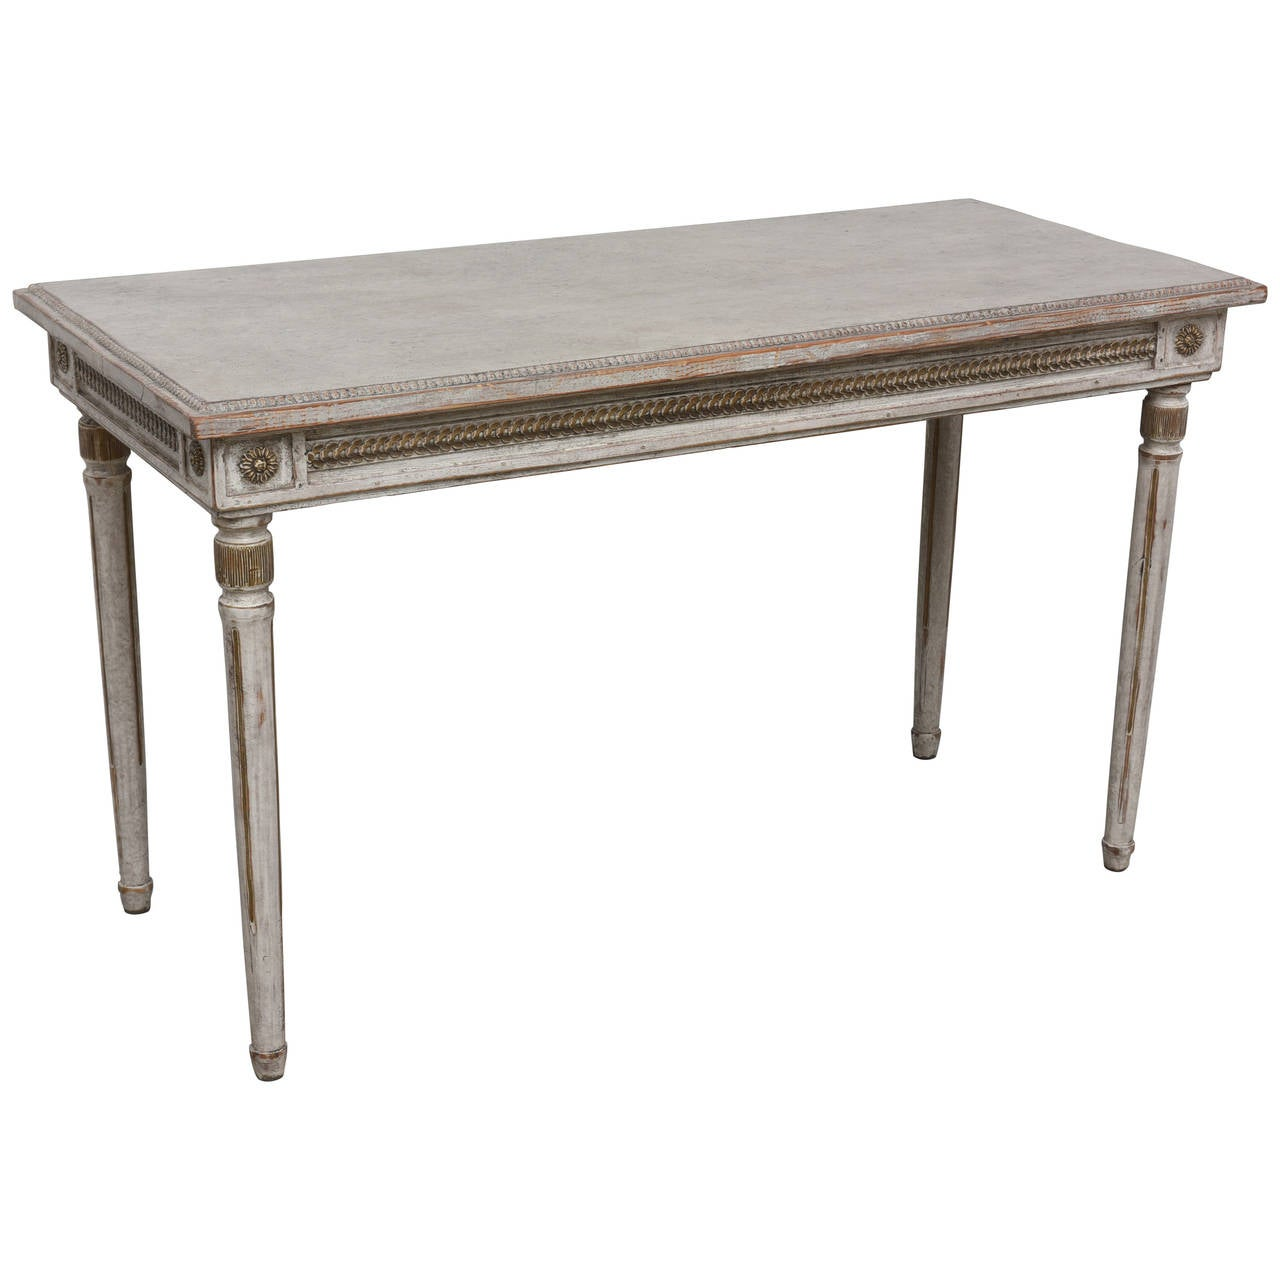 Painted antique swedish console table mid 19th century at for Painted foyer tables